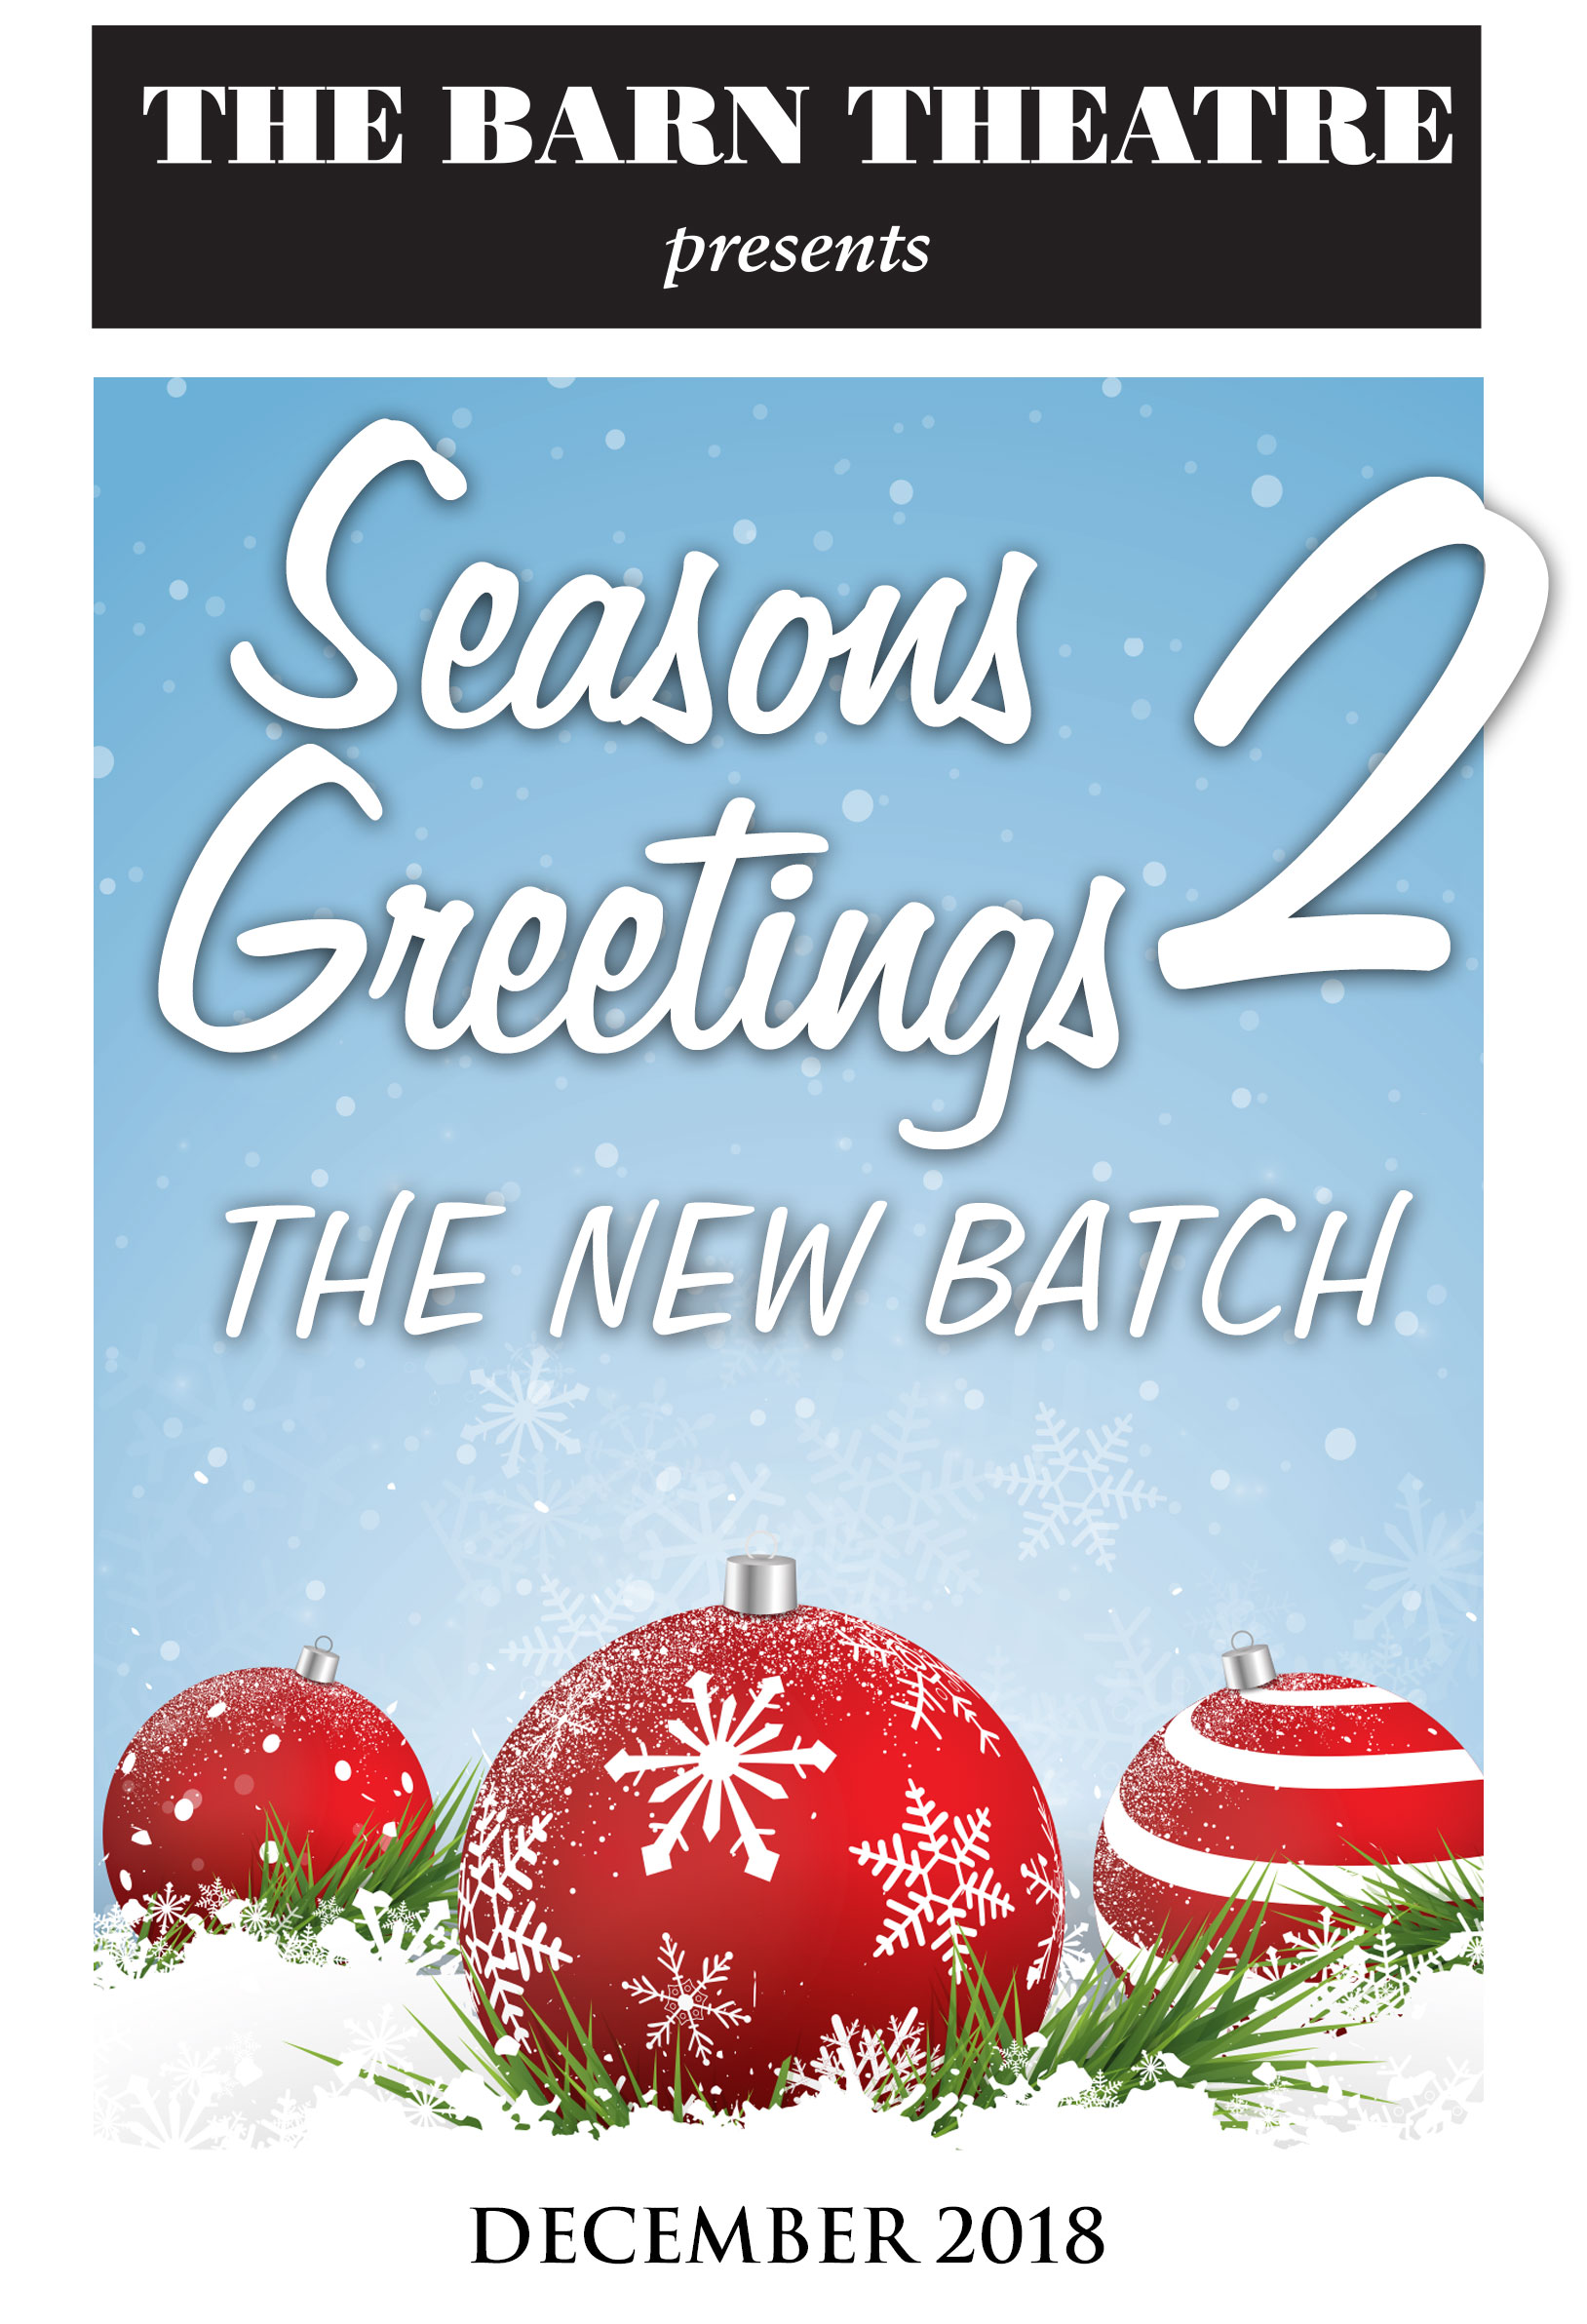 Program Cover for Seasons Greetings 2: A New Batch